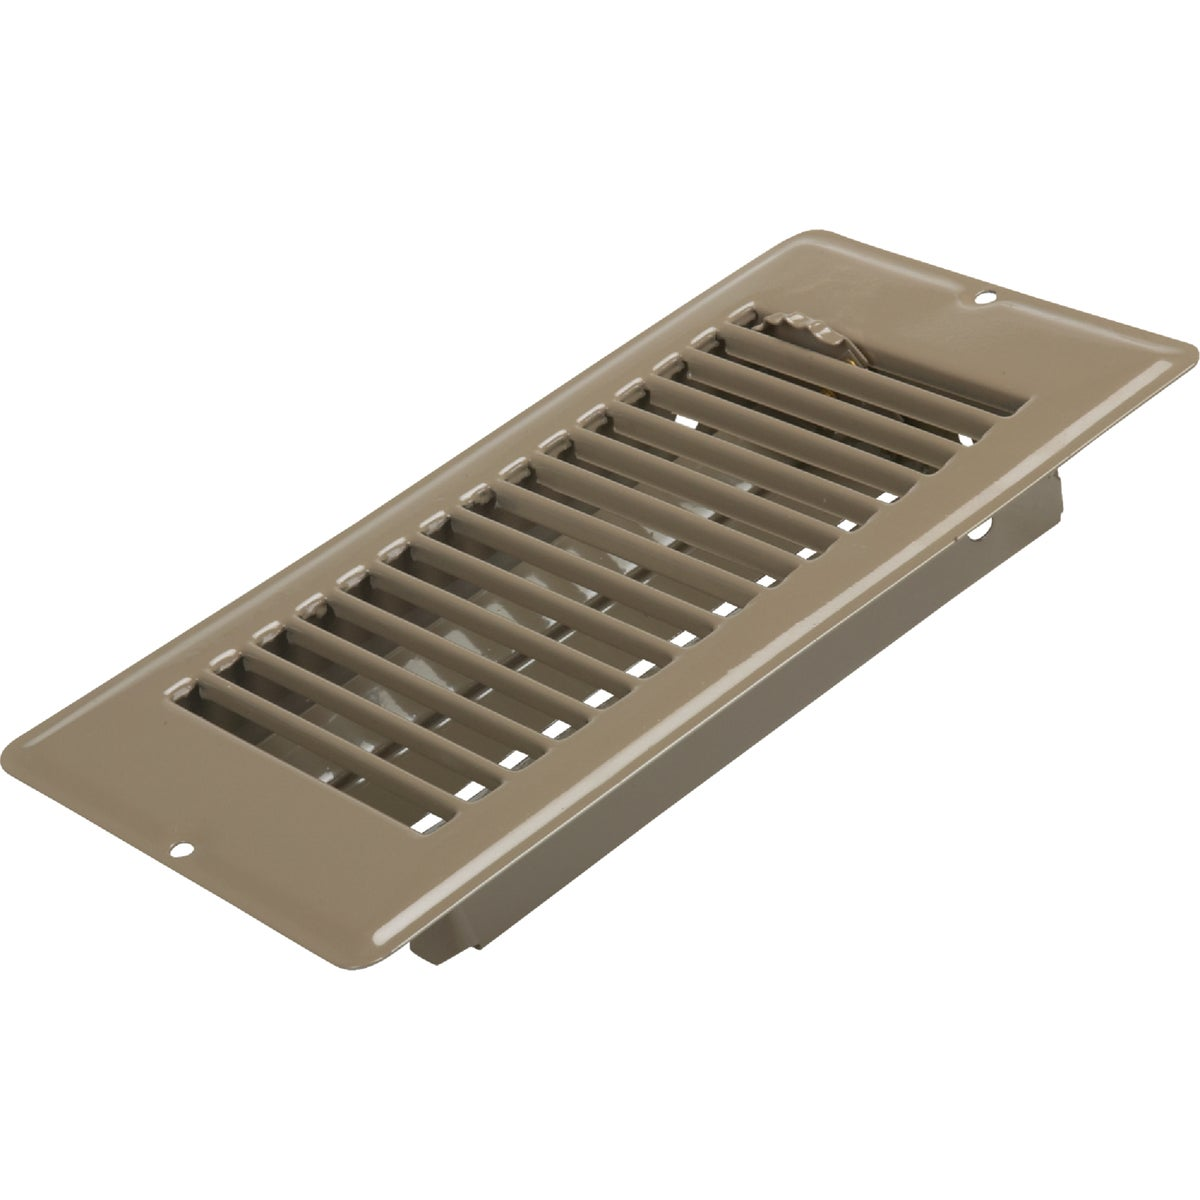 4X8 BRN FLOOR REGISTER - V-056IB by U S Hardware